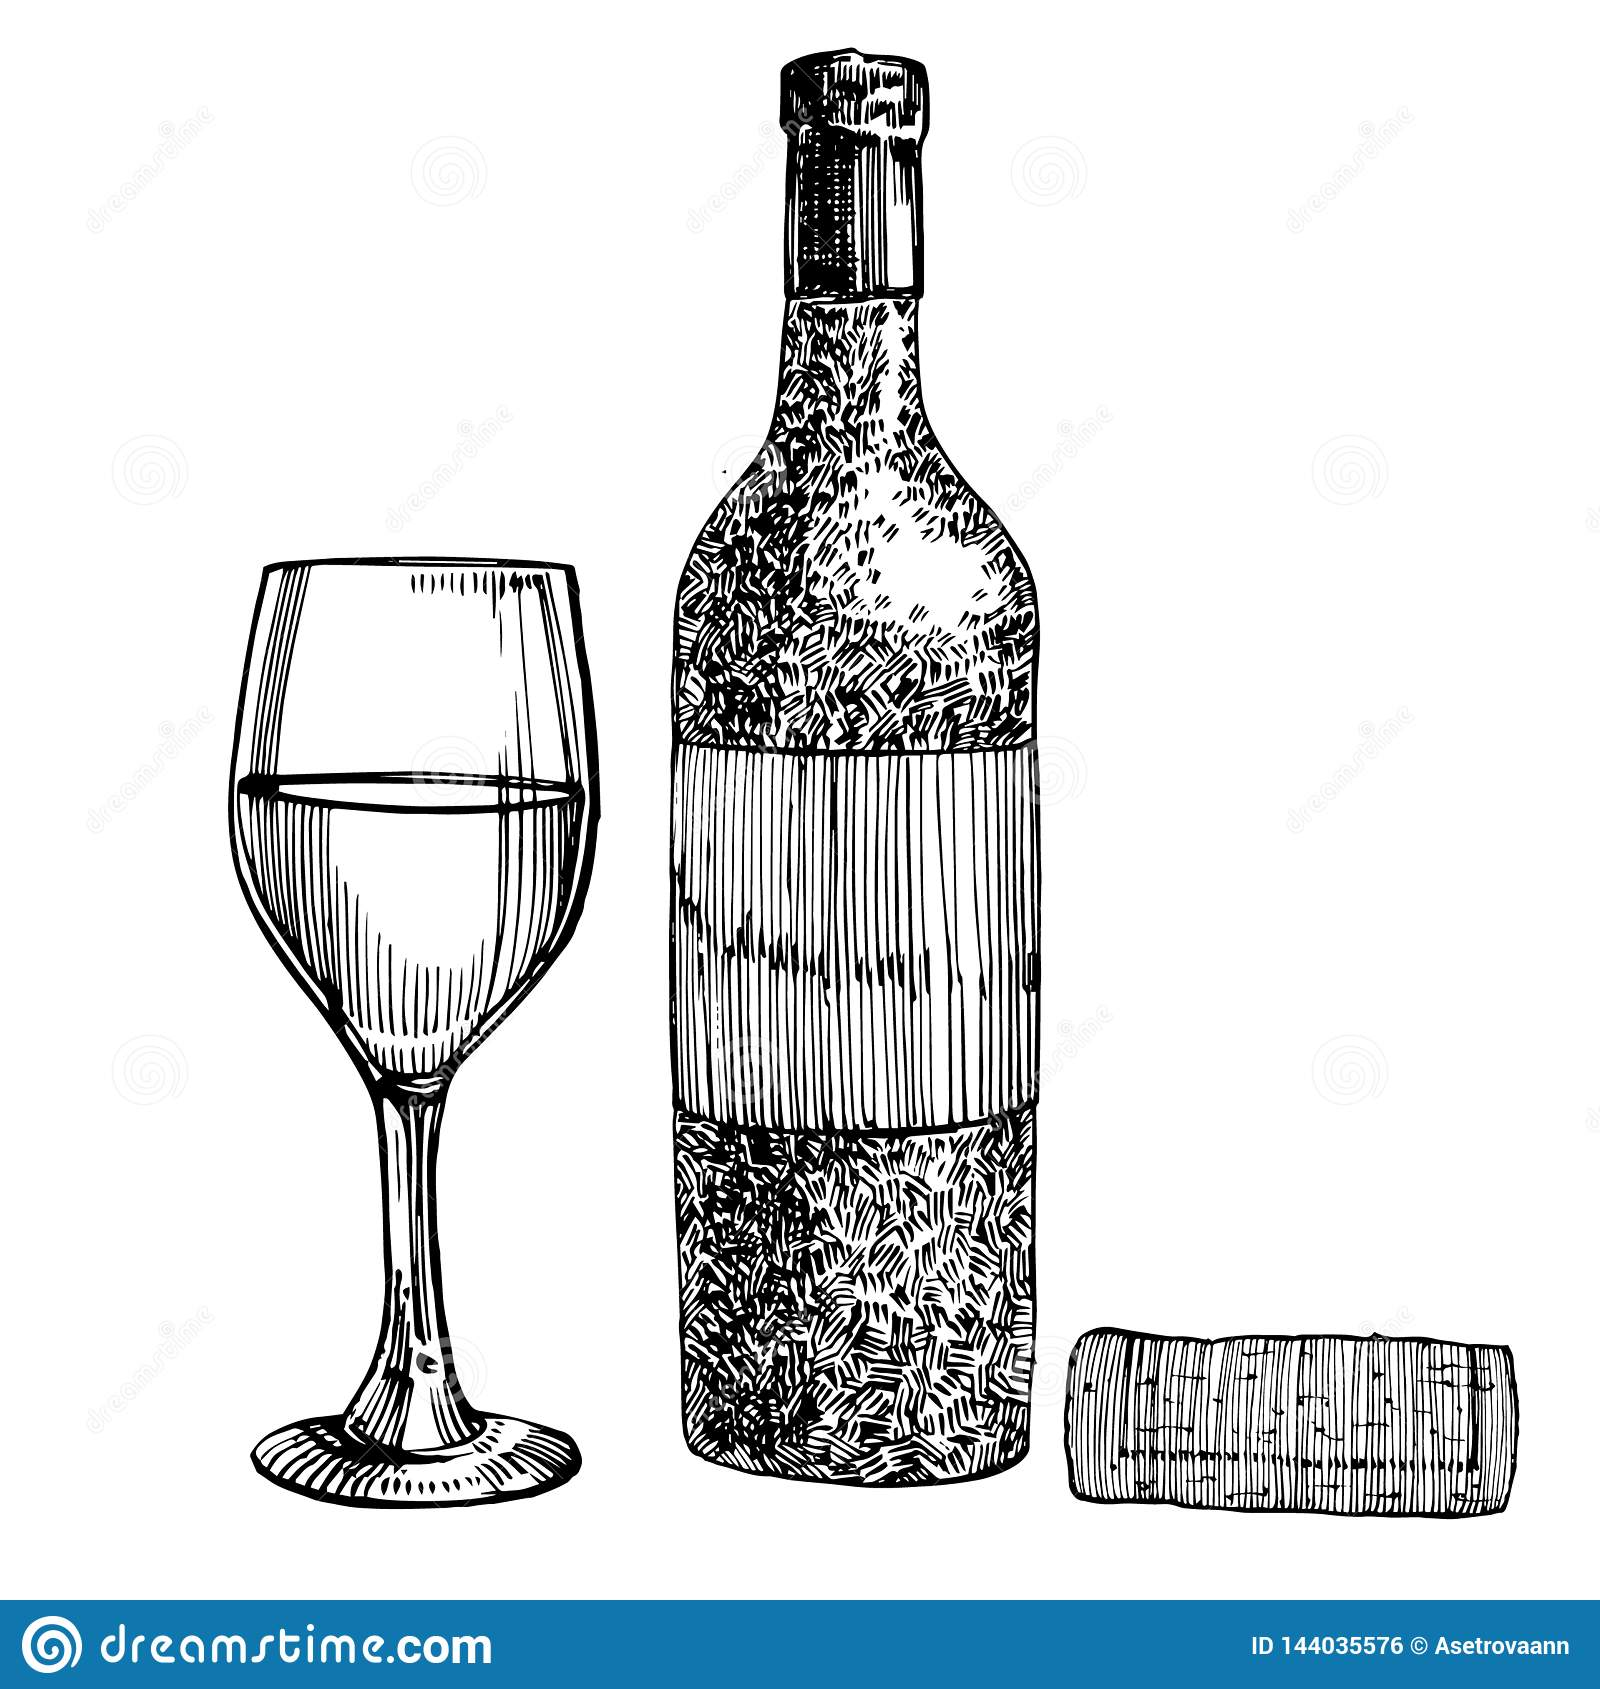 Red Wine Bottle And Glasses Sketch Style Illustration Isolated On White Background Realistic Hand Drawing Engraving Stock Illustration Illustration Of Alcohol Object 144035576